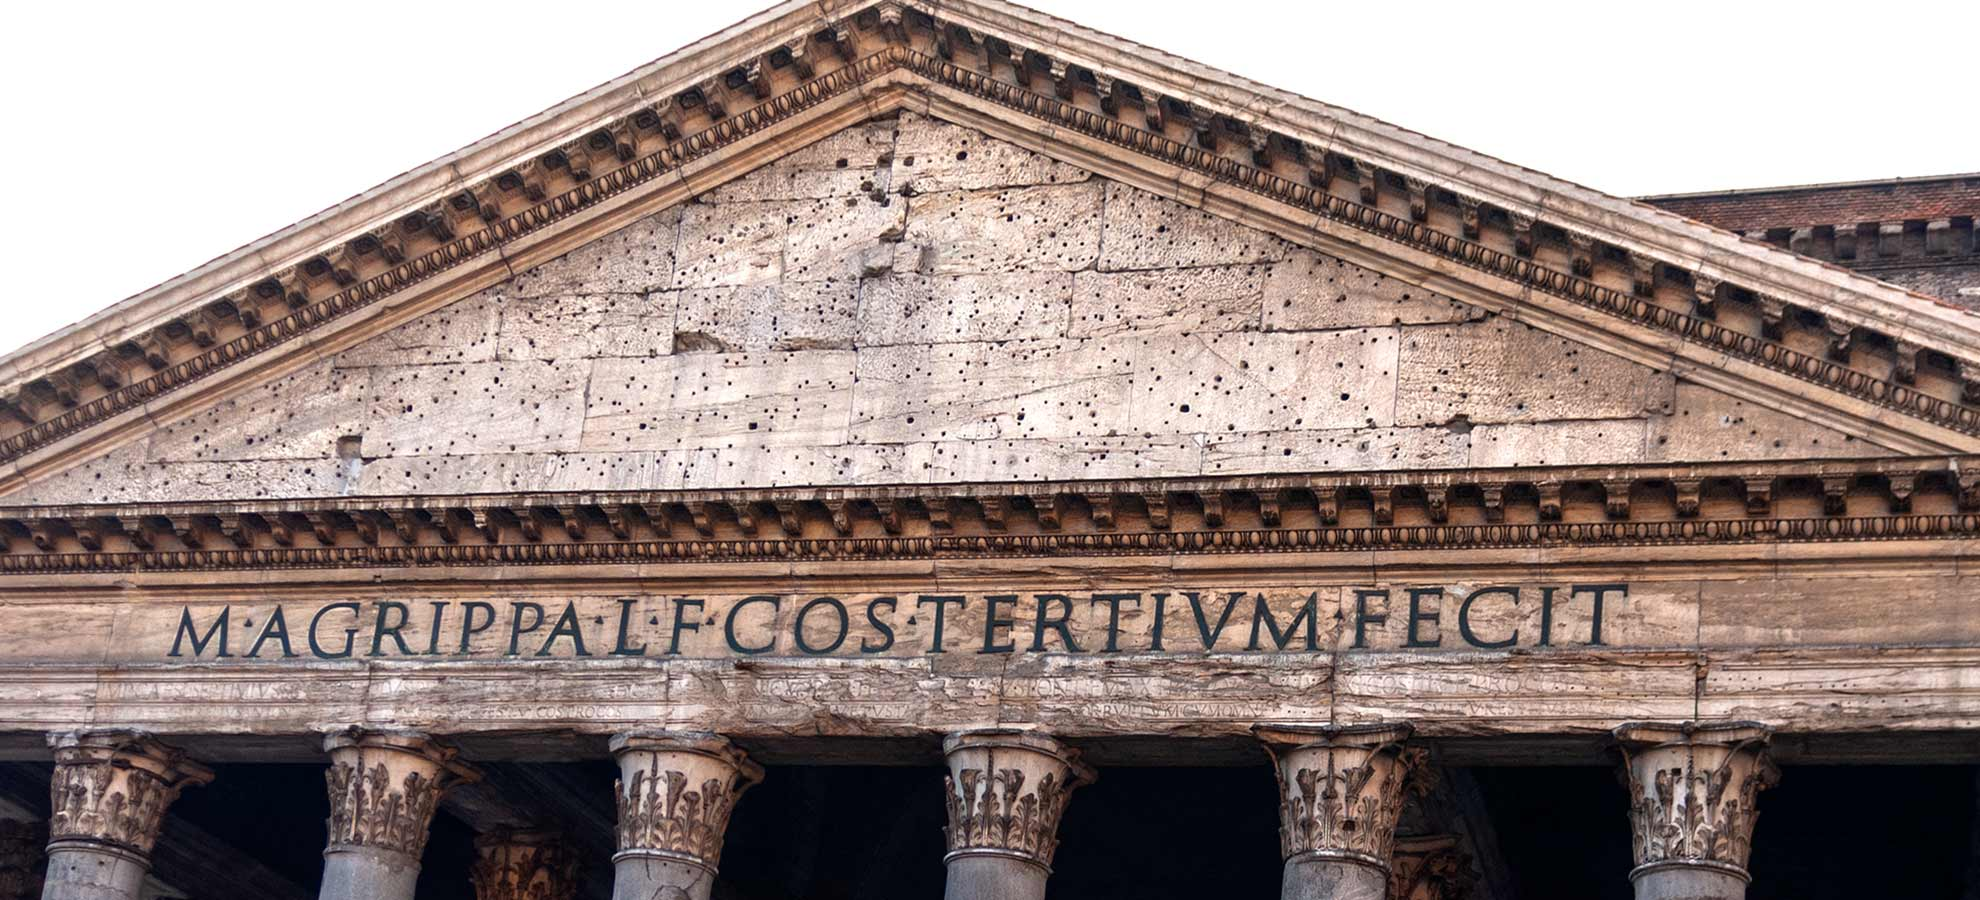 Front of the Pantheon's Portico with a sign saying Marcus Agrippa built this